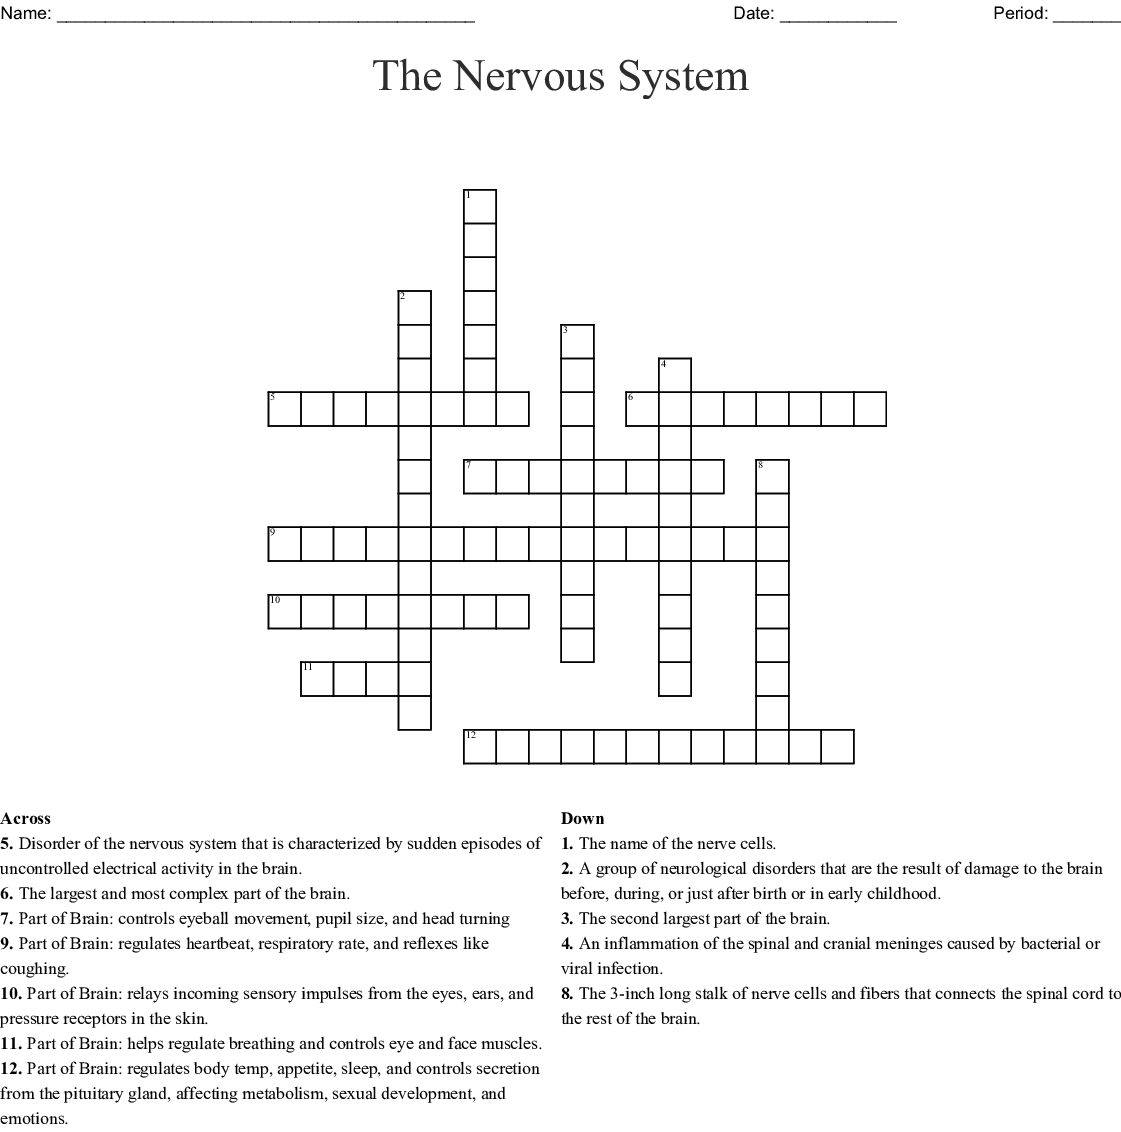 Worksheet on Endocrine and Nervous System Crossword - WordMint